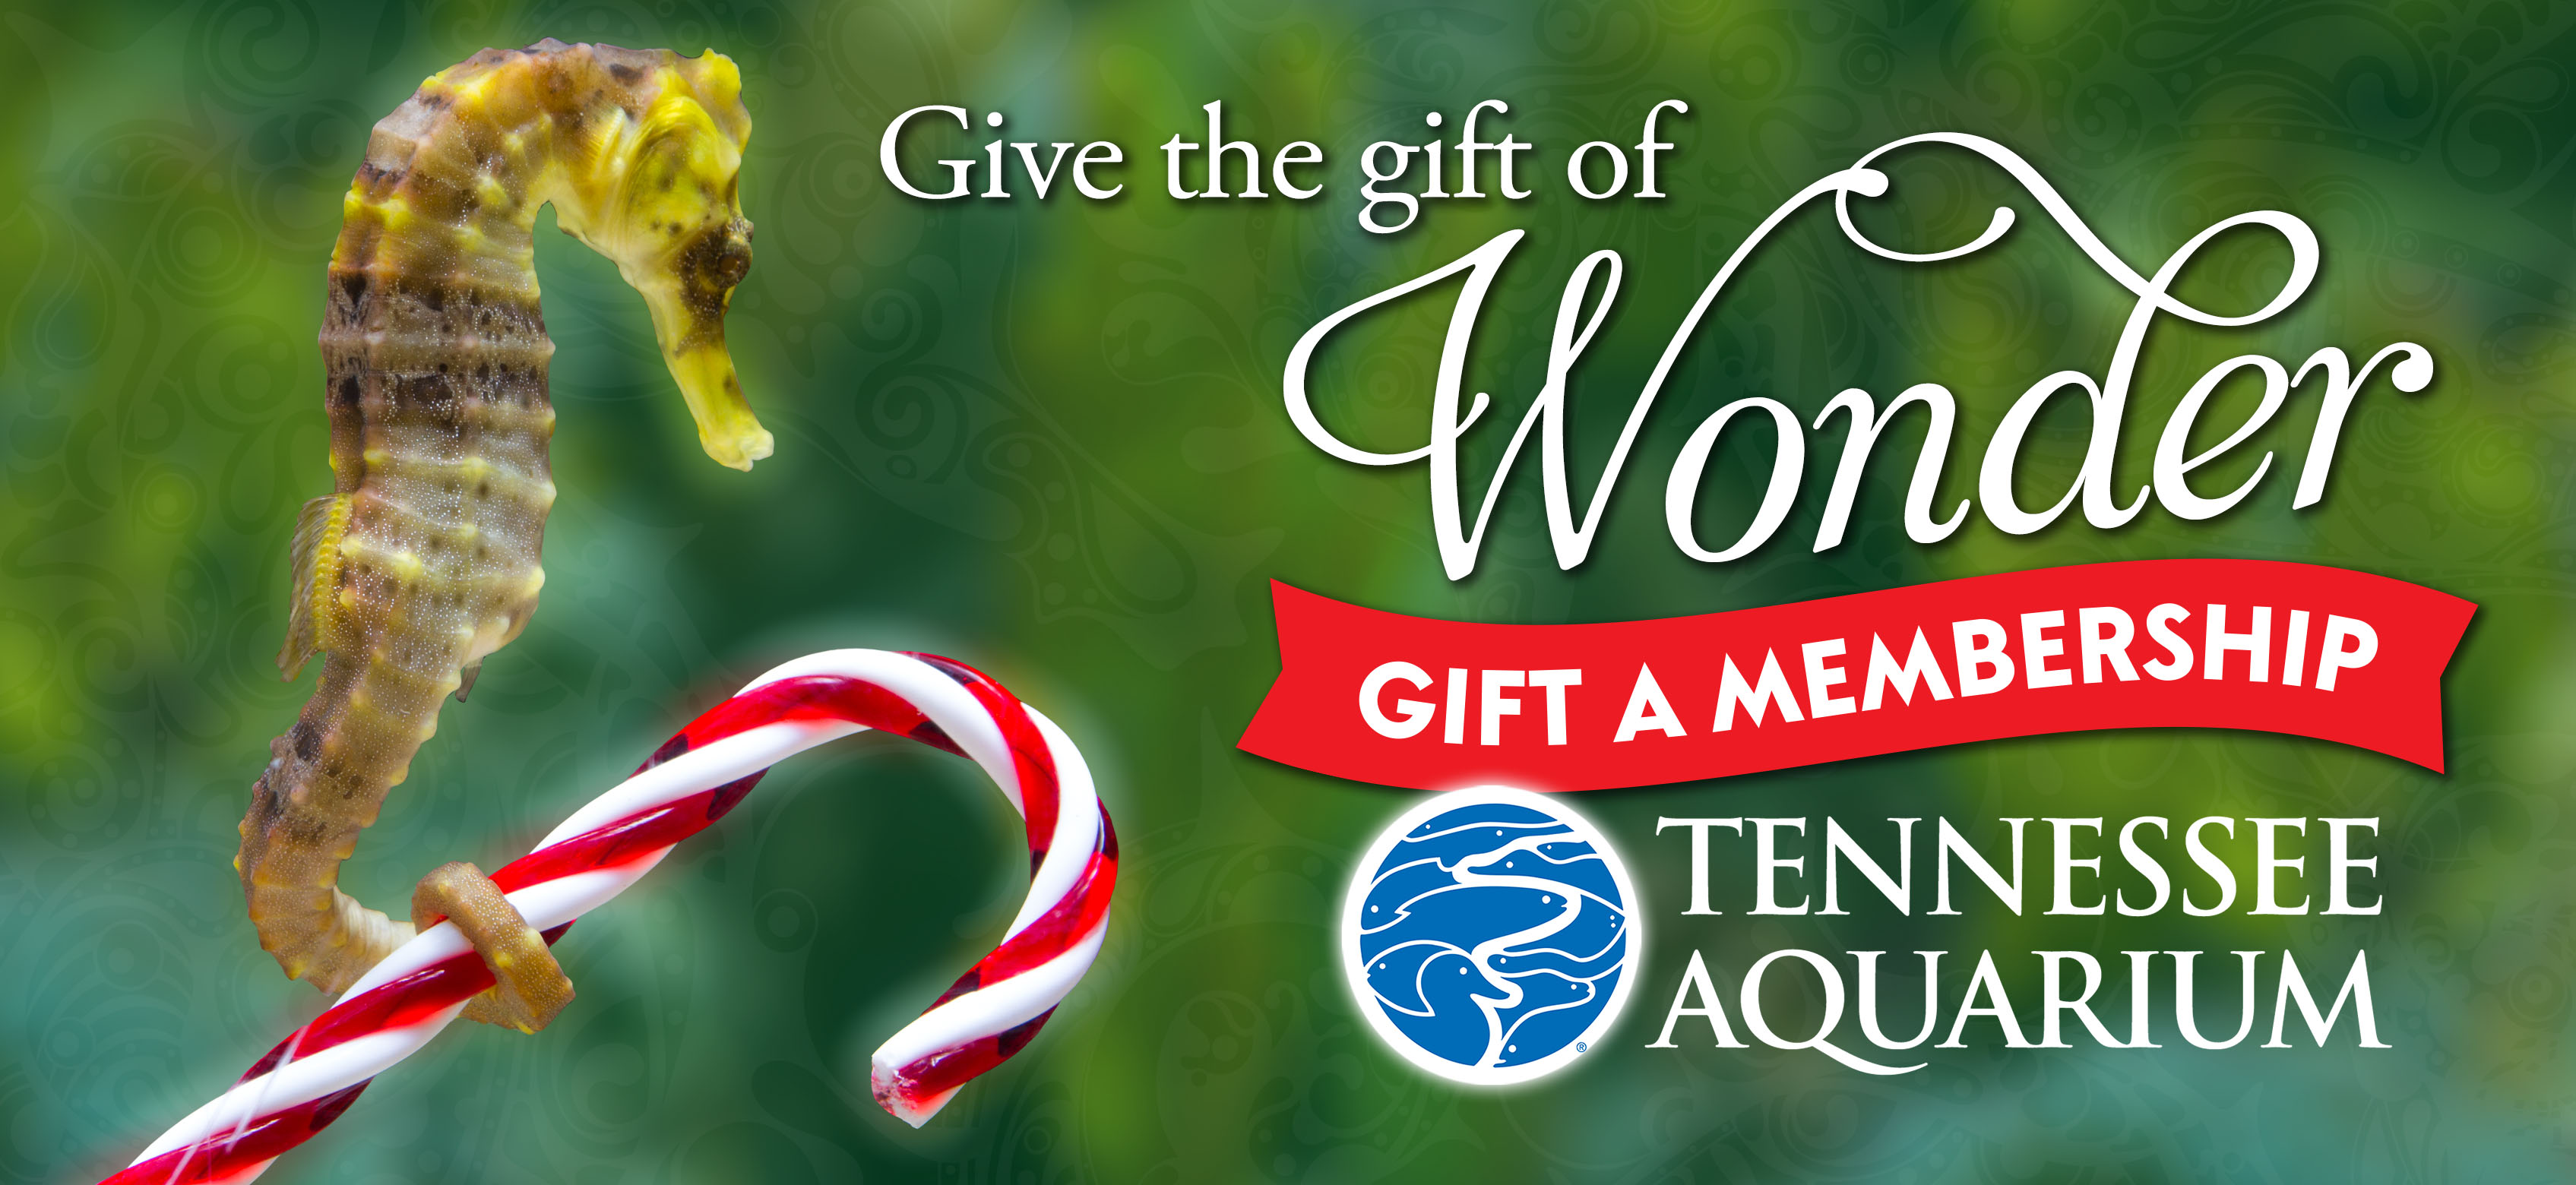 Tennessee Aquarium Membership